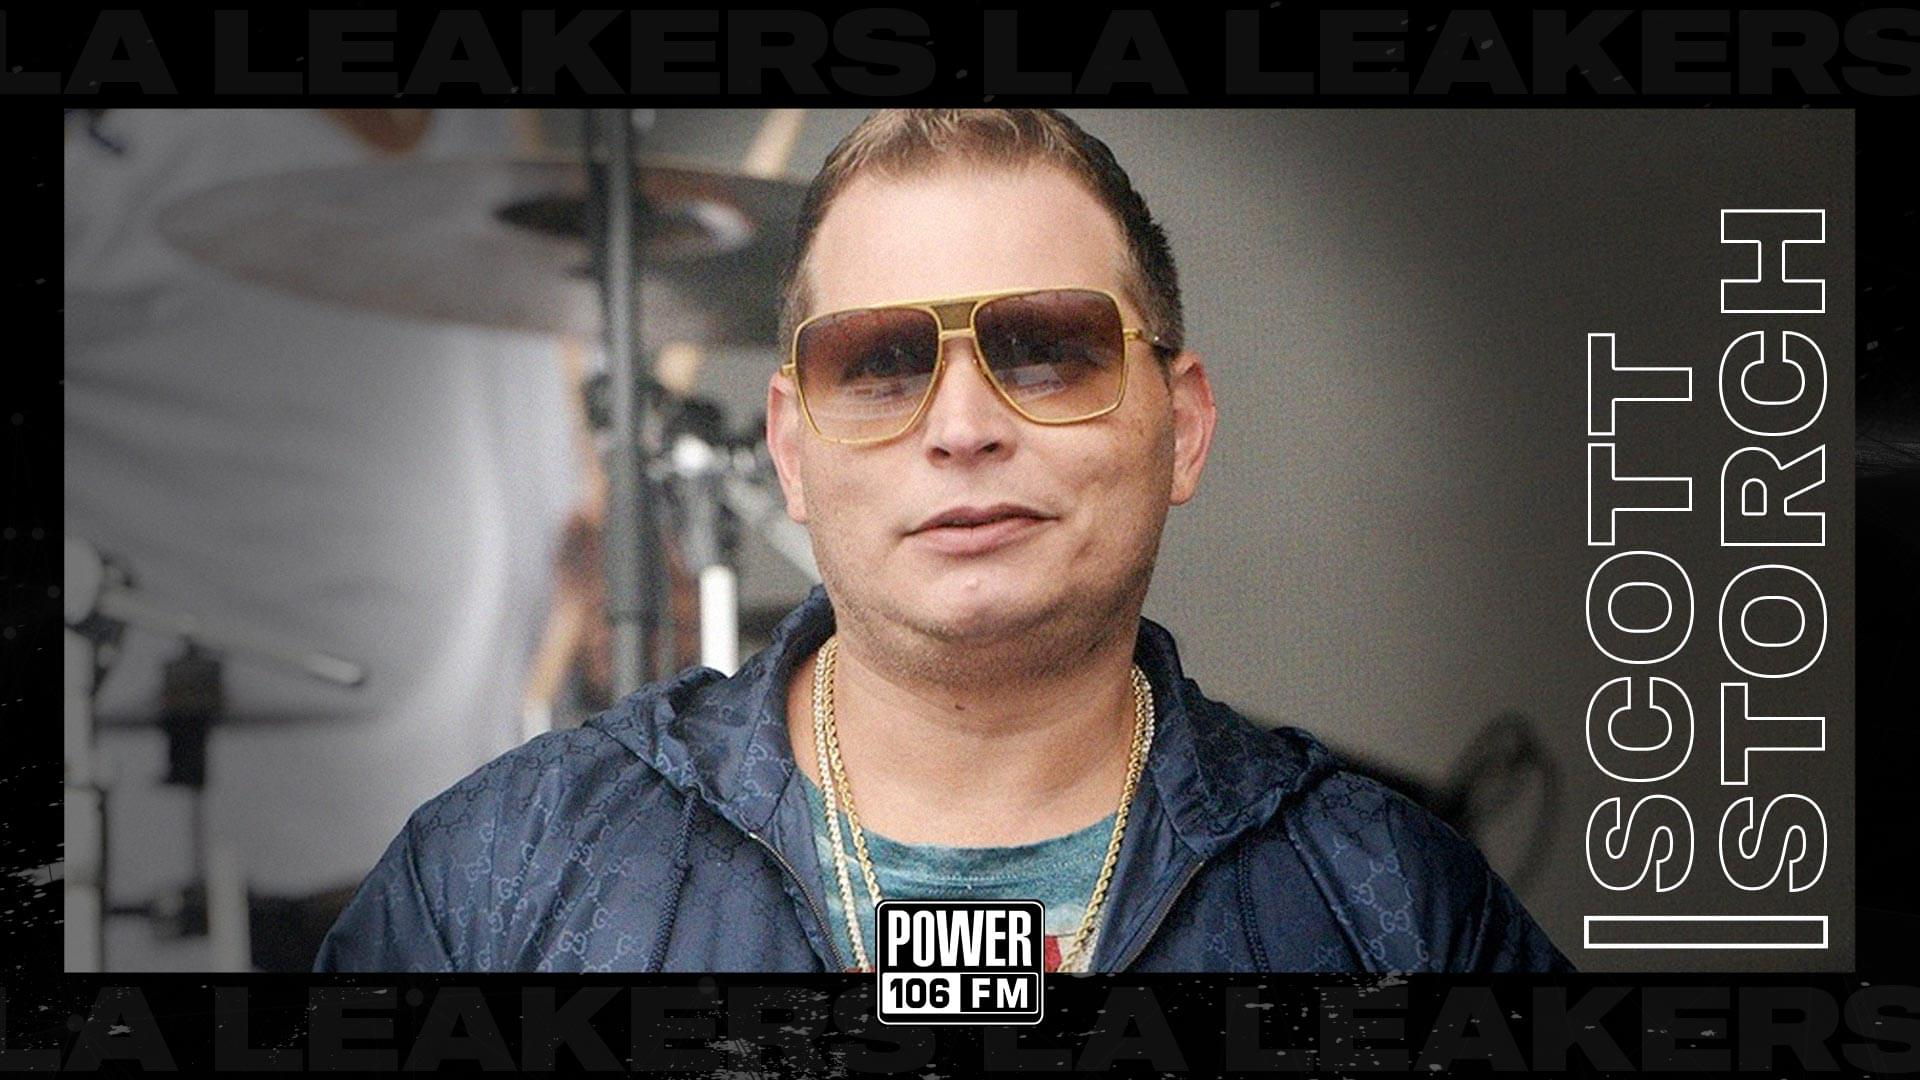 Scott Storch On Working With Dr. Dre, His Favorite Beat, Verzuz Battle + New Music